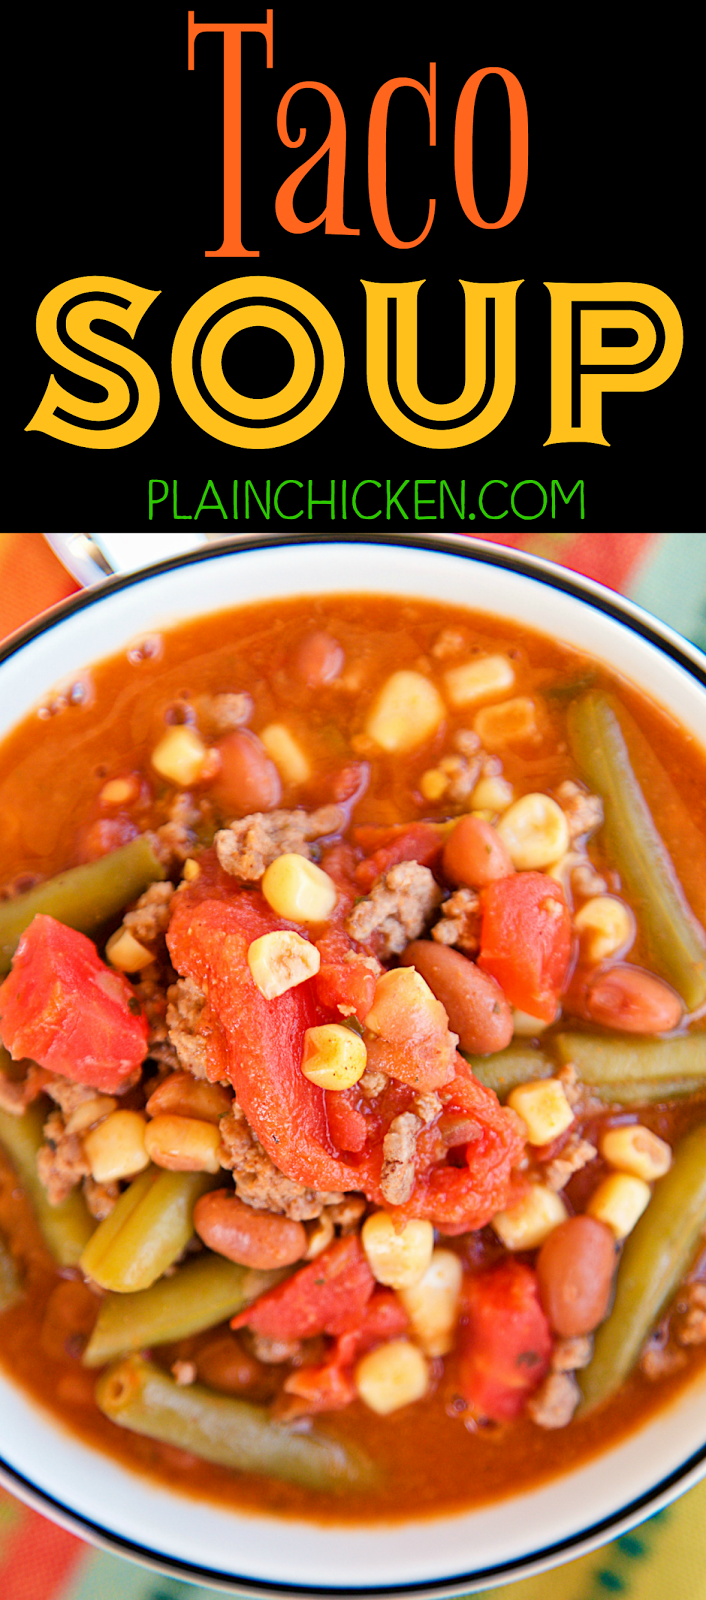 Taco Soup: ready in less than 30 minutes! I love this version with green beans and beer! Burger, pinto beans, green beans, beans, stewed tomatoes, beer, diced tomatoes and green chilies, taco seasoning and Ranch dressing mix. We do this at least twice a month. So good!! You can freeze leftovers for a quick meal later. You can also do this in the slow cooker.